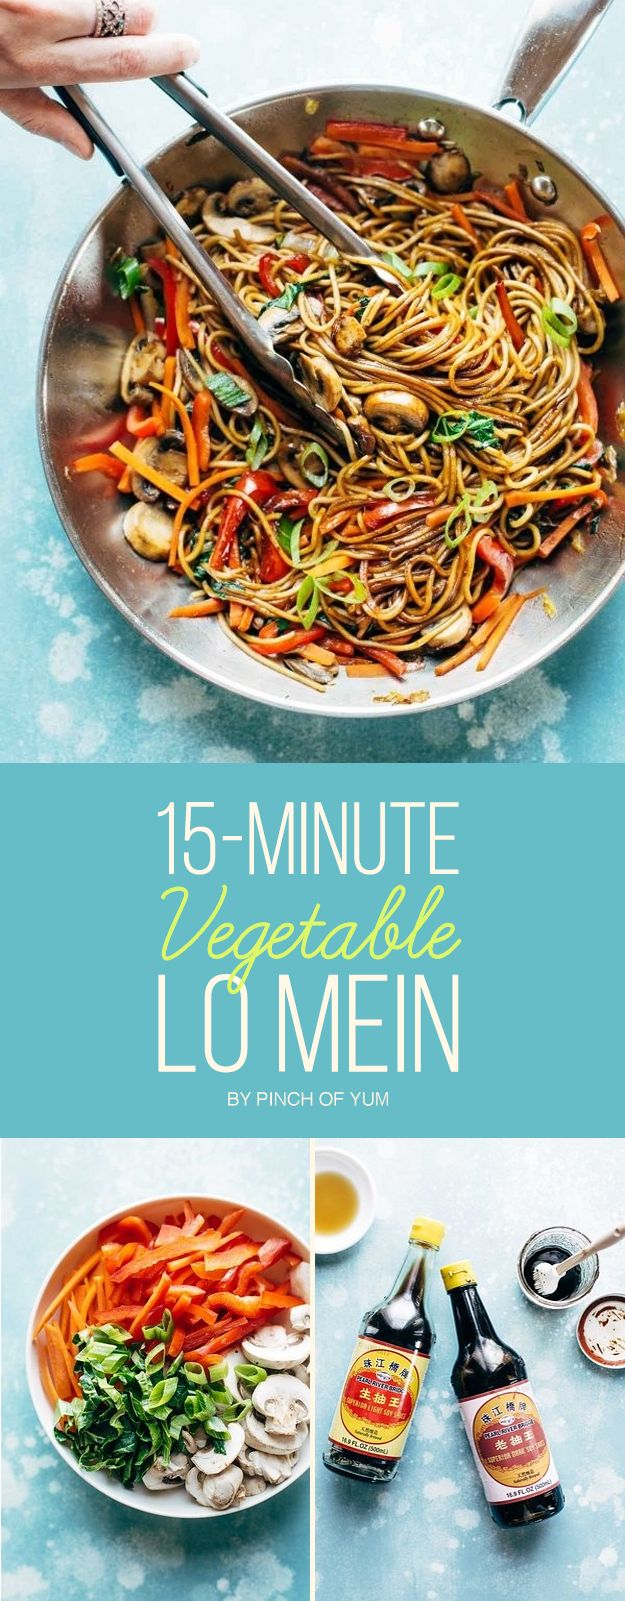 Best 185 Recipes to Cook images on Pinterest | Cooking food ...